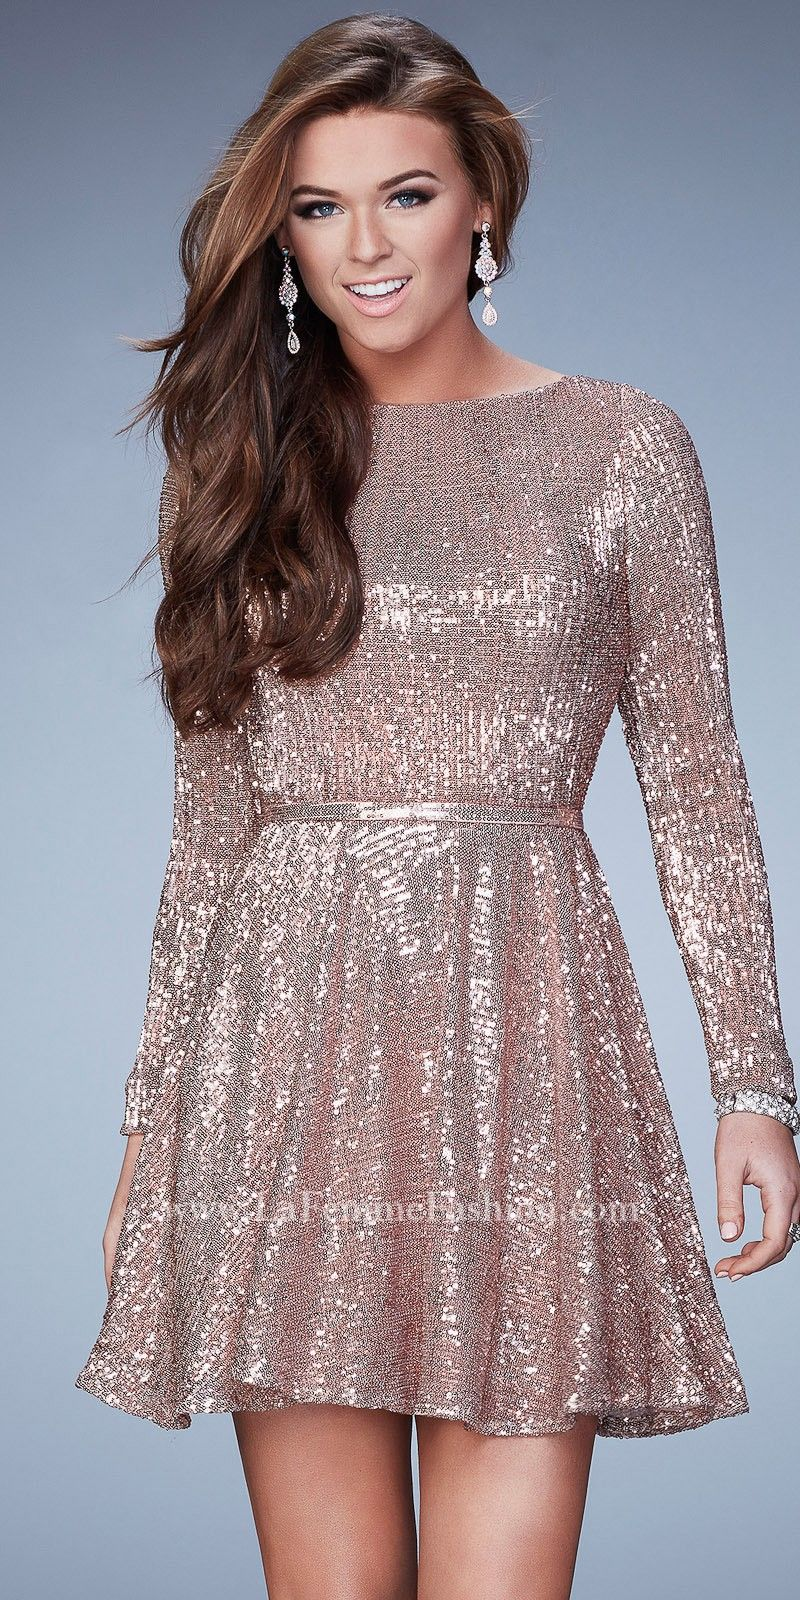 Long sleeve cocktail dress for wedding  Long Sleeve Keyhole Sequined Cocktail Dress by La Femme  wedding